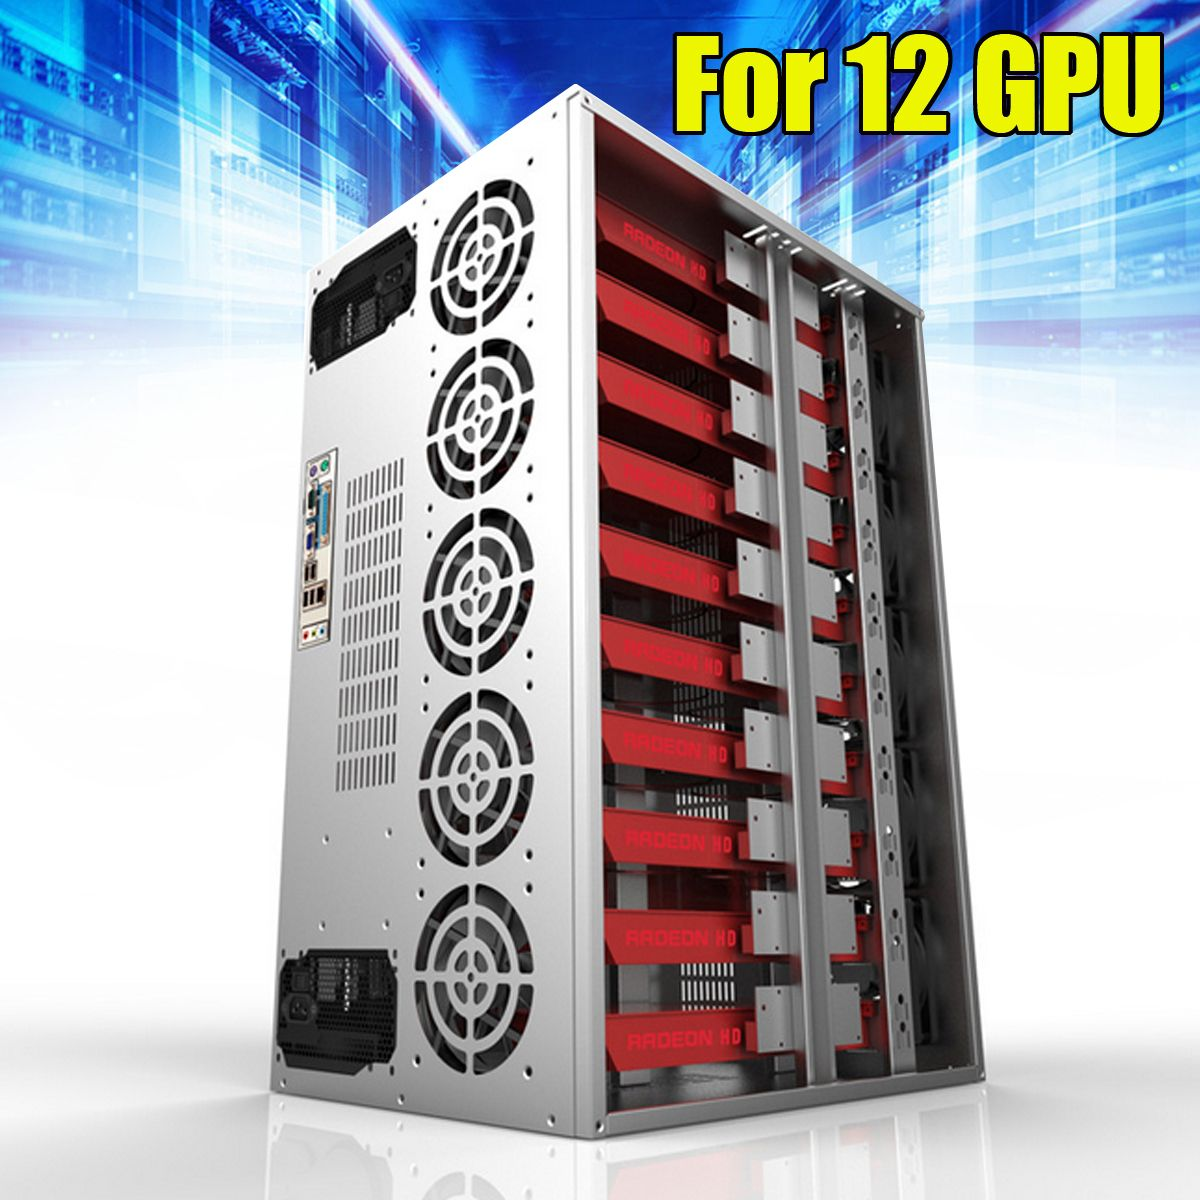 Diy Mining Frame Rig Case Miner Mining Machine Frame For 12 Gpu Mining Crypto Currency Rigs Miner 210 10 235 35